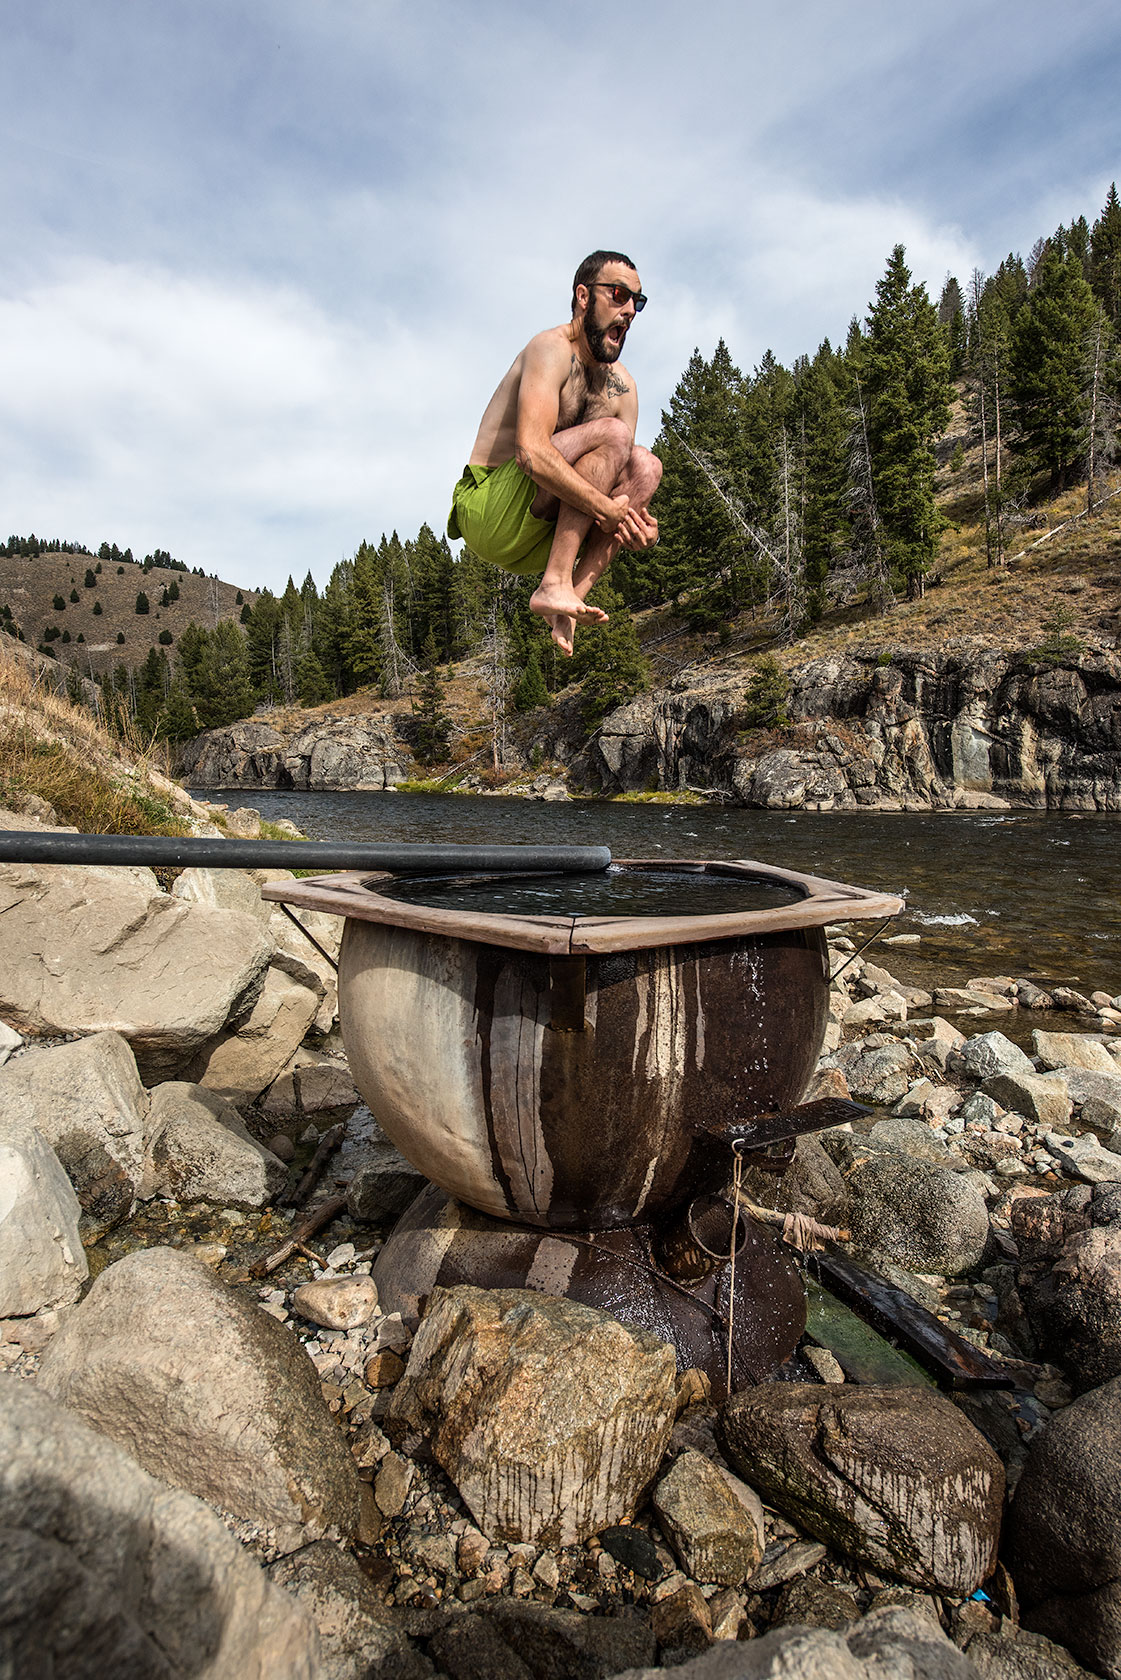 austin-trigg-patagonia-sawtooth-hiking-Boat-Box-Hot-Spring-Cannon-Ball-river-stanley-advenure-wilderness-forest-idaho-outside-lifestyle-day-fall-weather-mountains.jpg